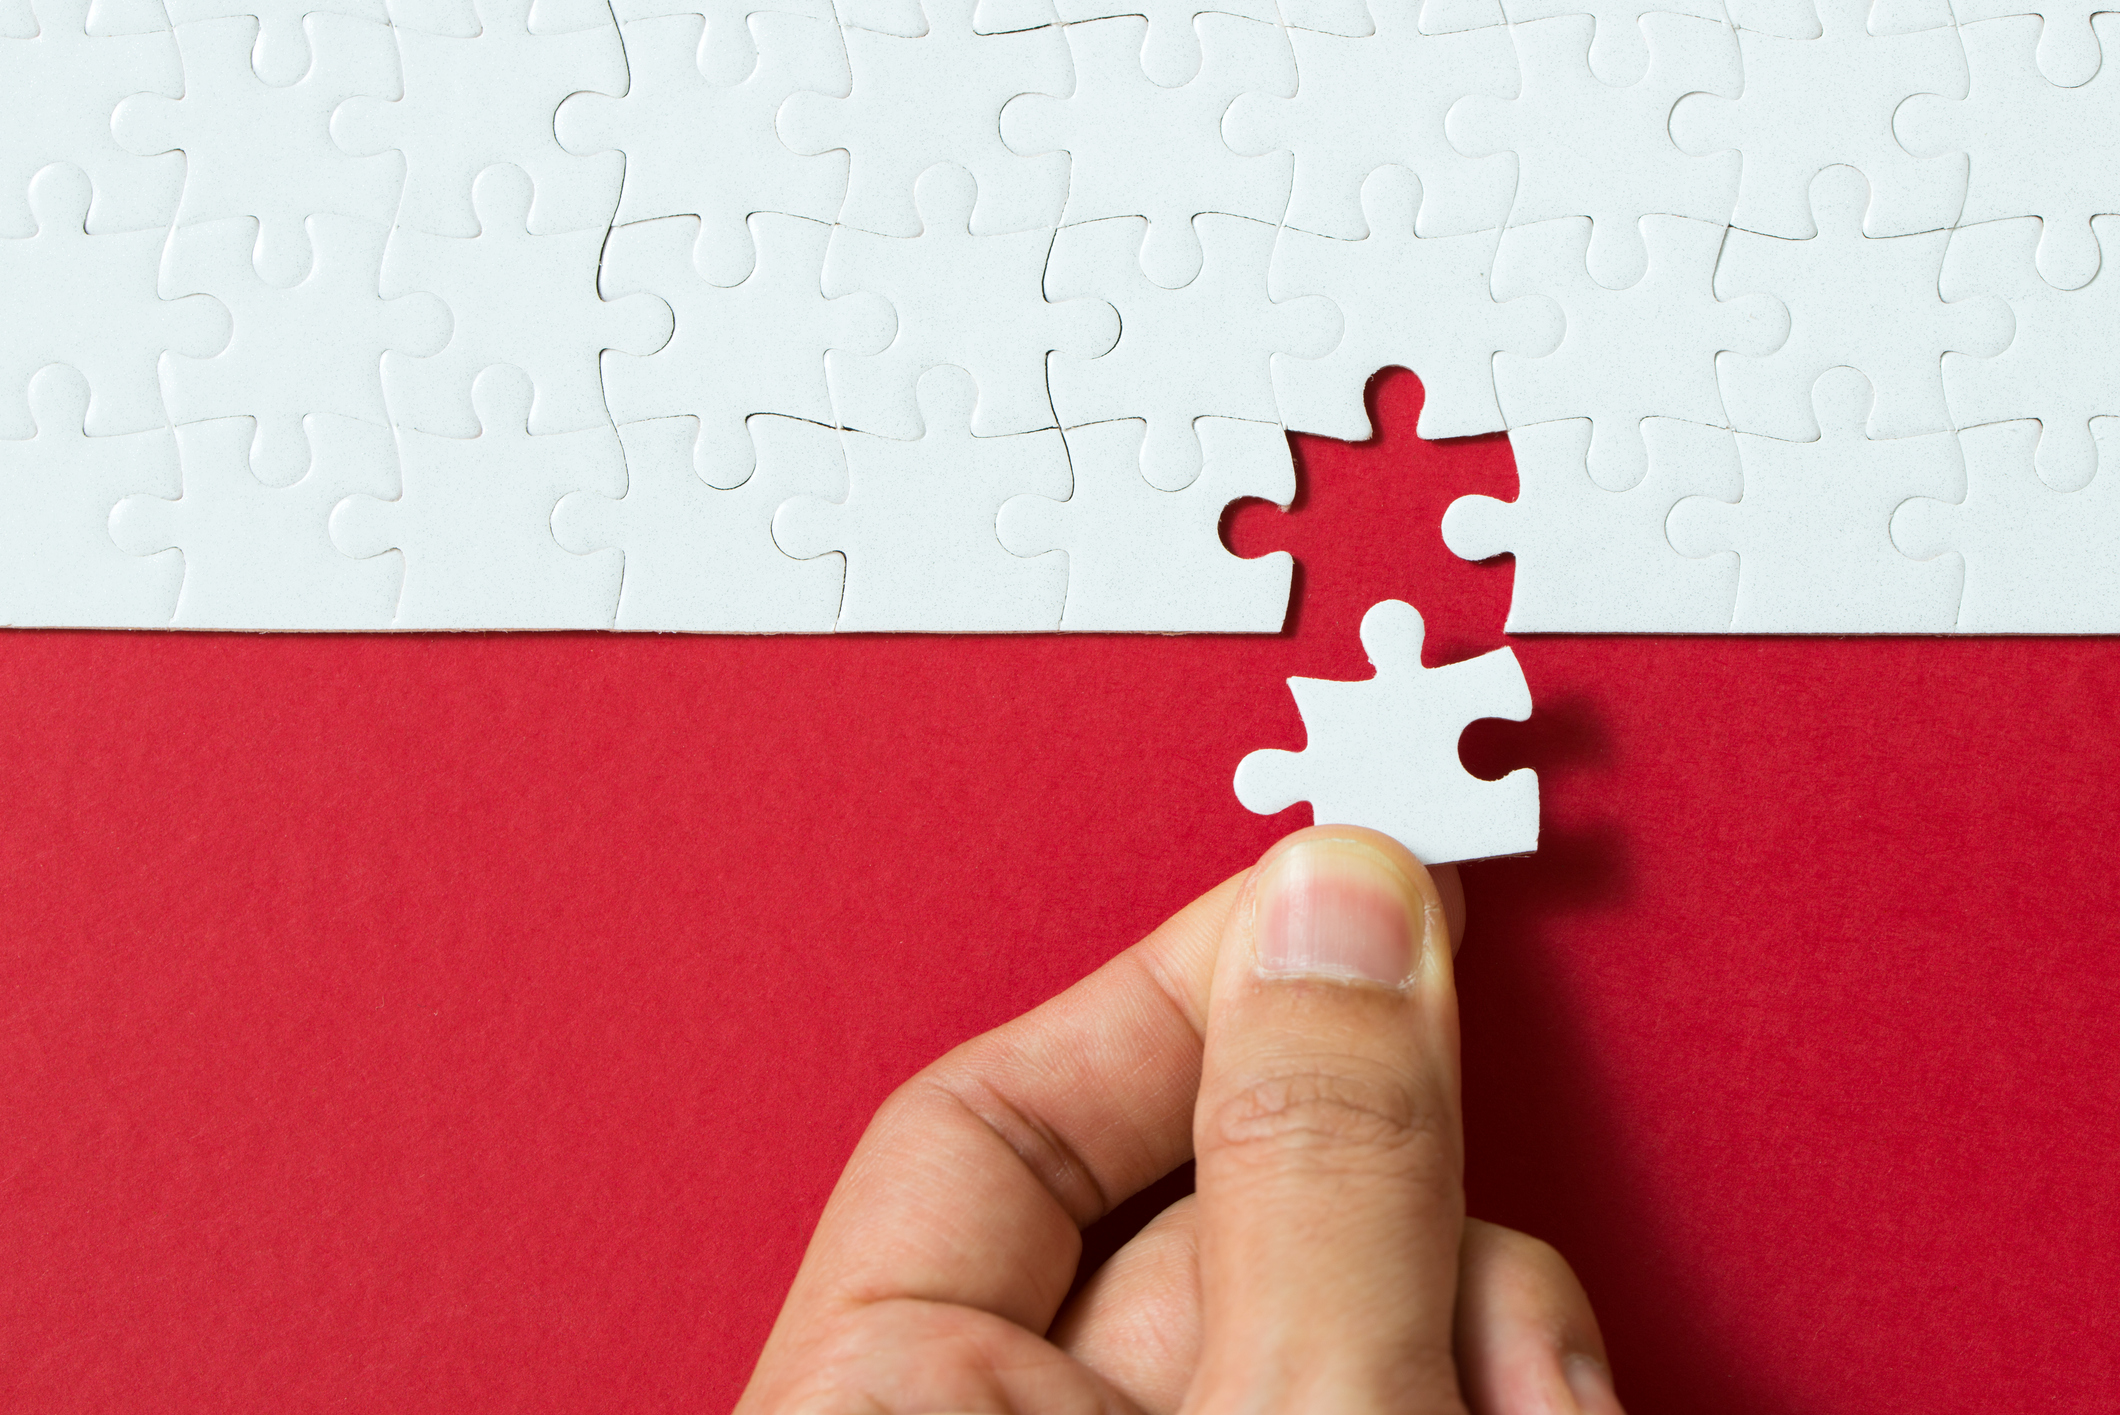 White puzzle pieces on a red background.